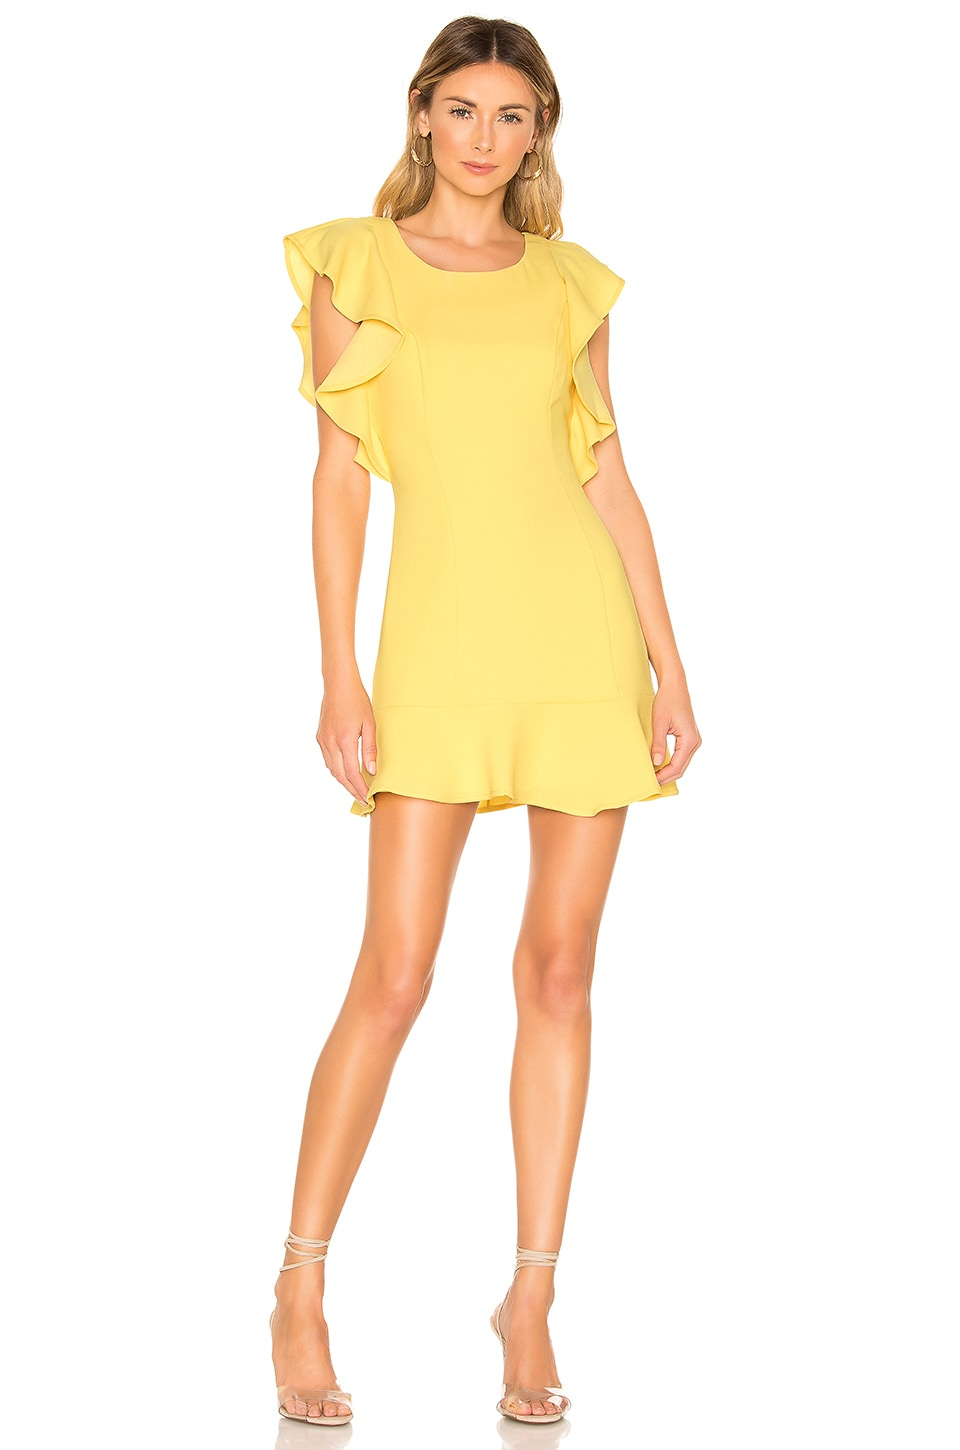 Bcbgeneration Dresses BCBGENERATION RUFFLE SLEEVE MINI DRESS IN YELLOW.